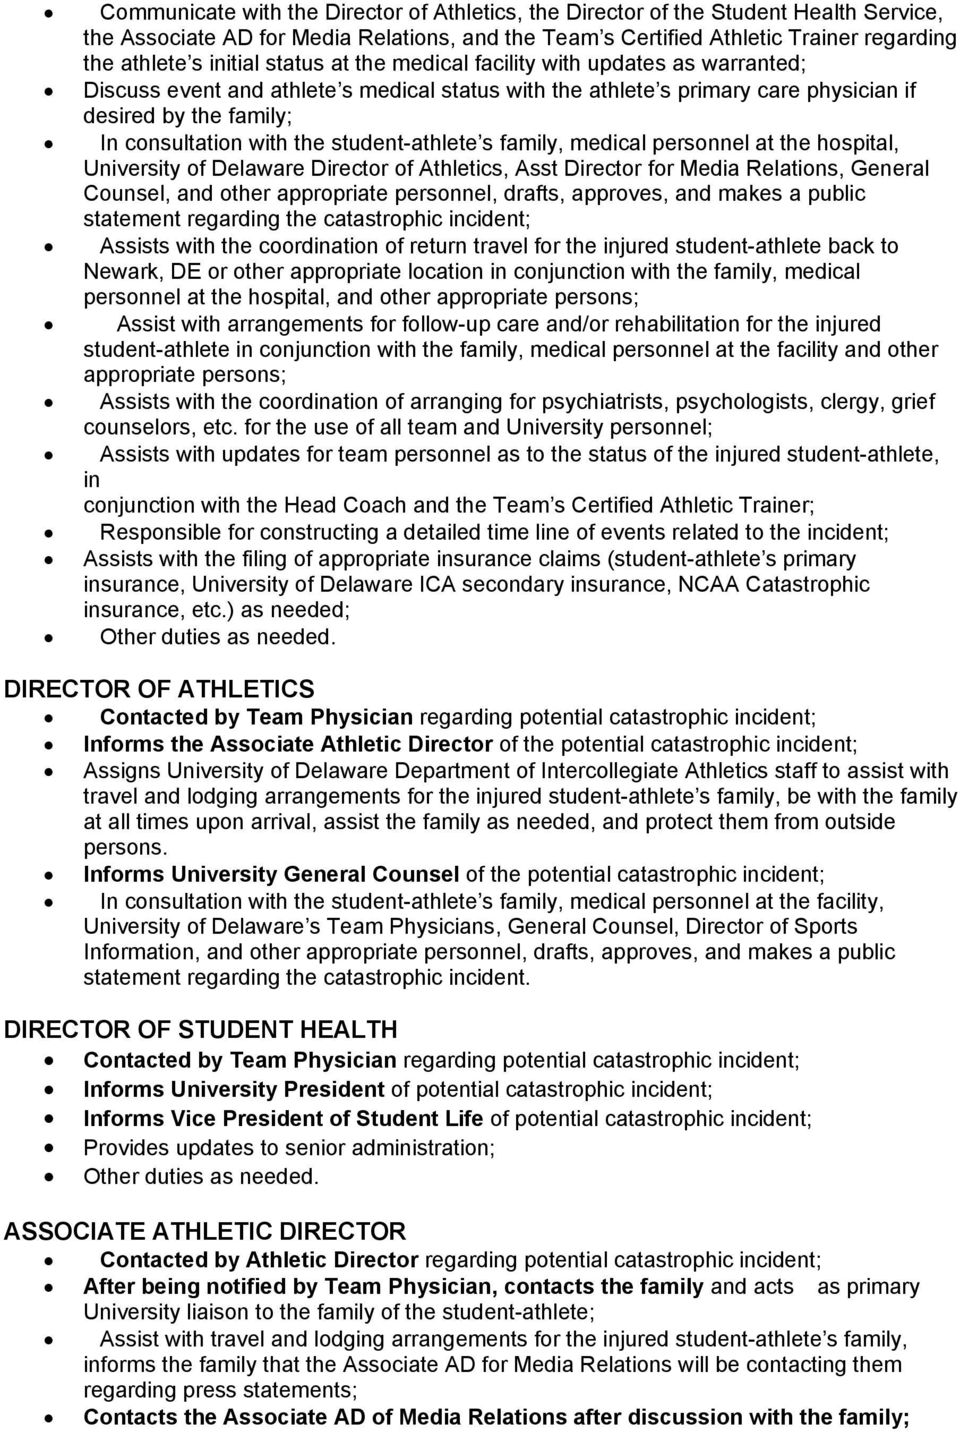 student-athlete s family, medical personnel at the hospital, University of Delaware Director of Athletics, Asst Director for Media Relations, General Counsel, and other appropriate personnel, drafts,